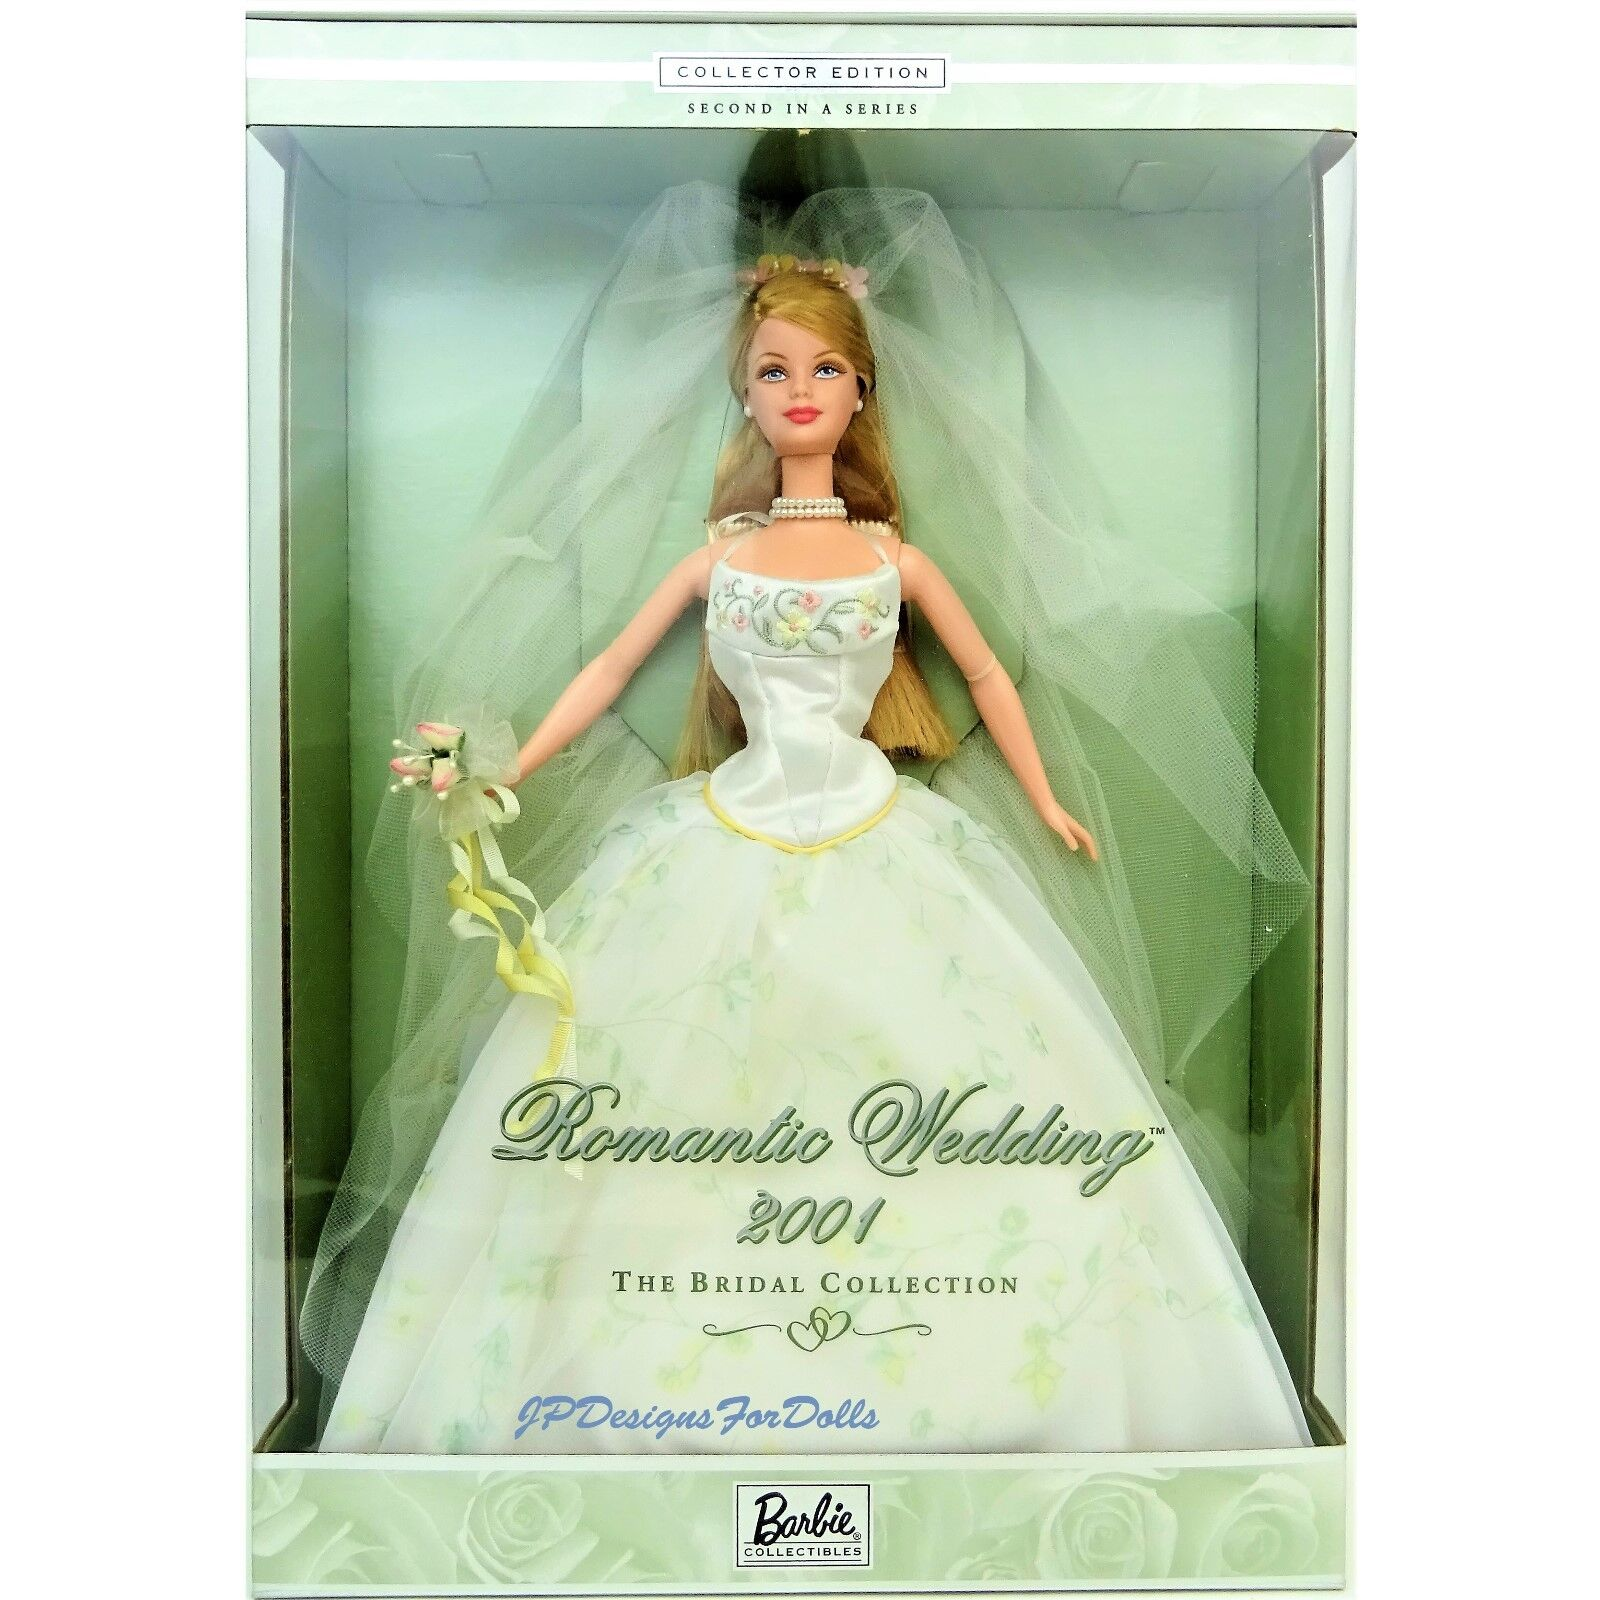 Romantic Wedding 2001 The Bridal Collection Barbie Doll New in Box